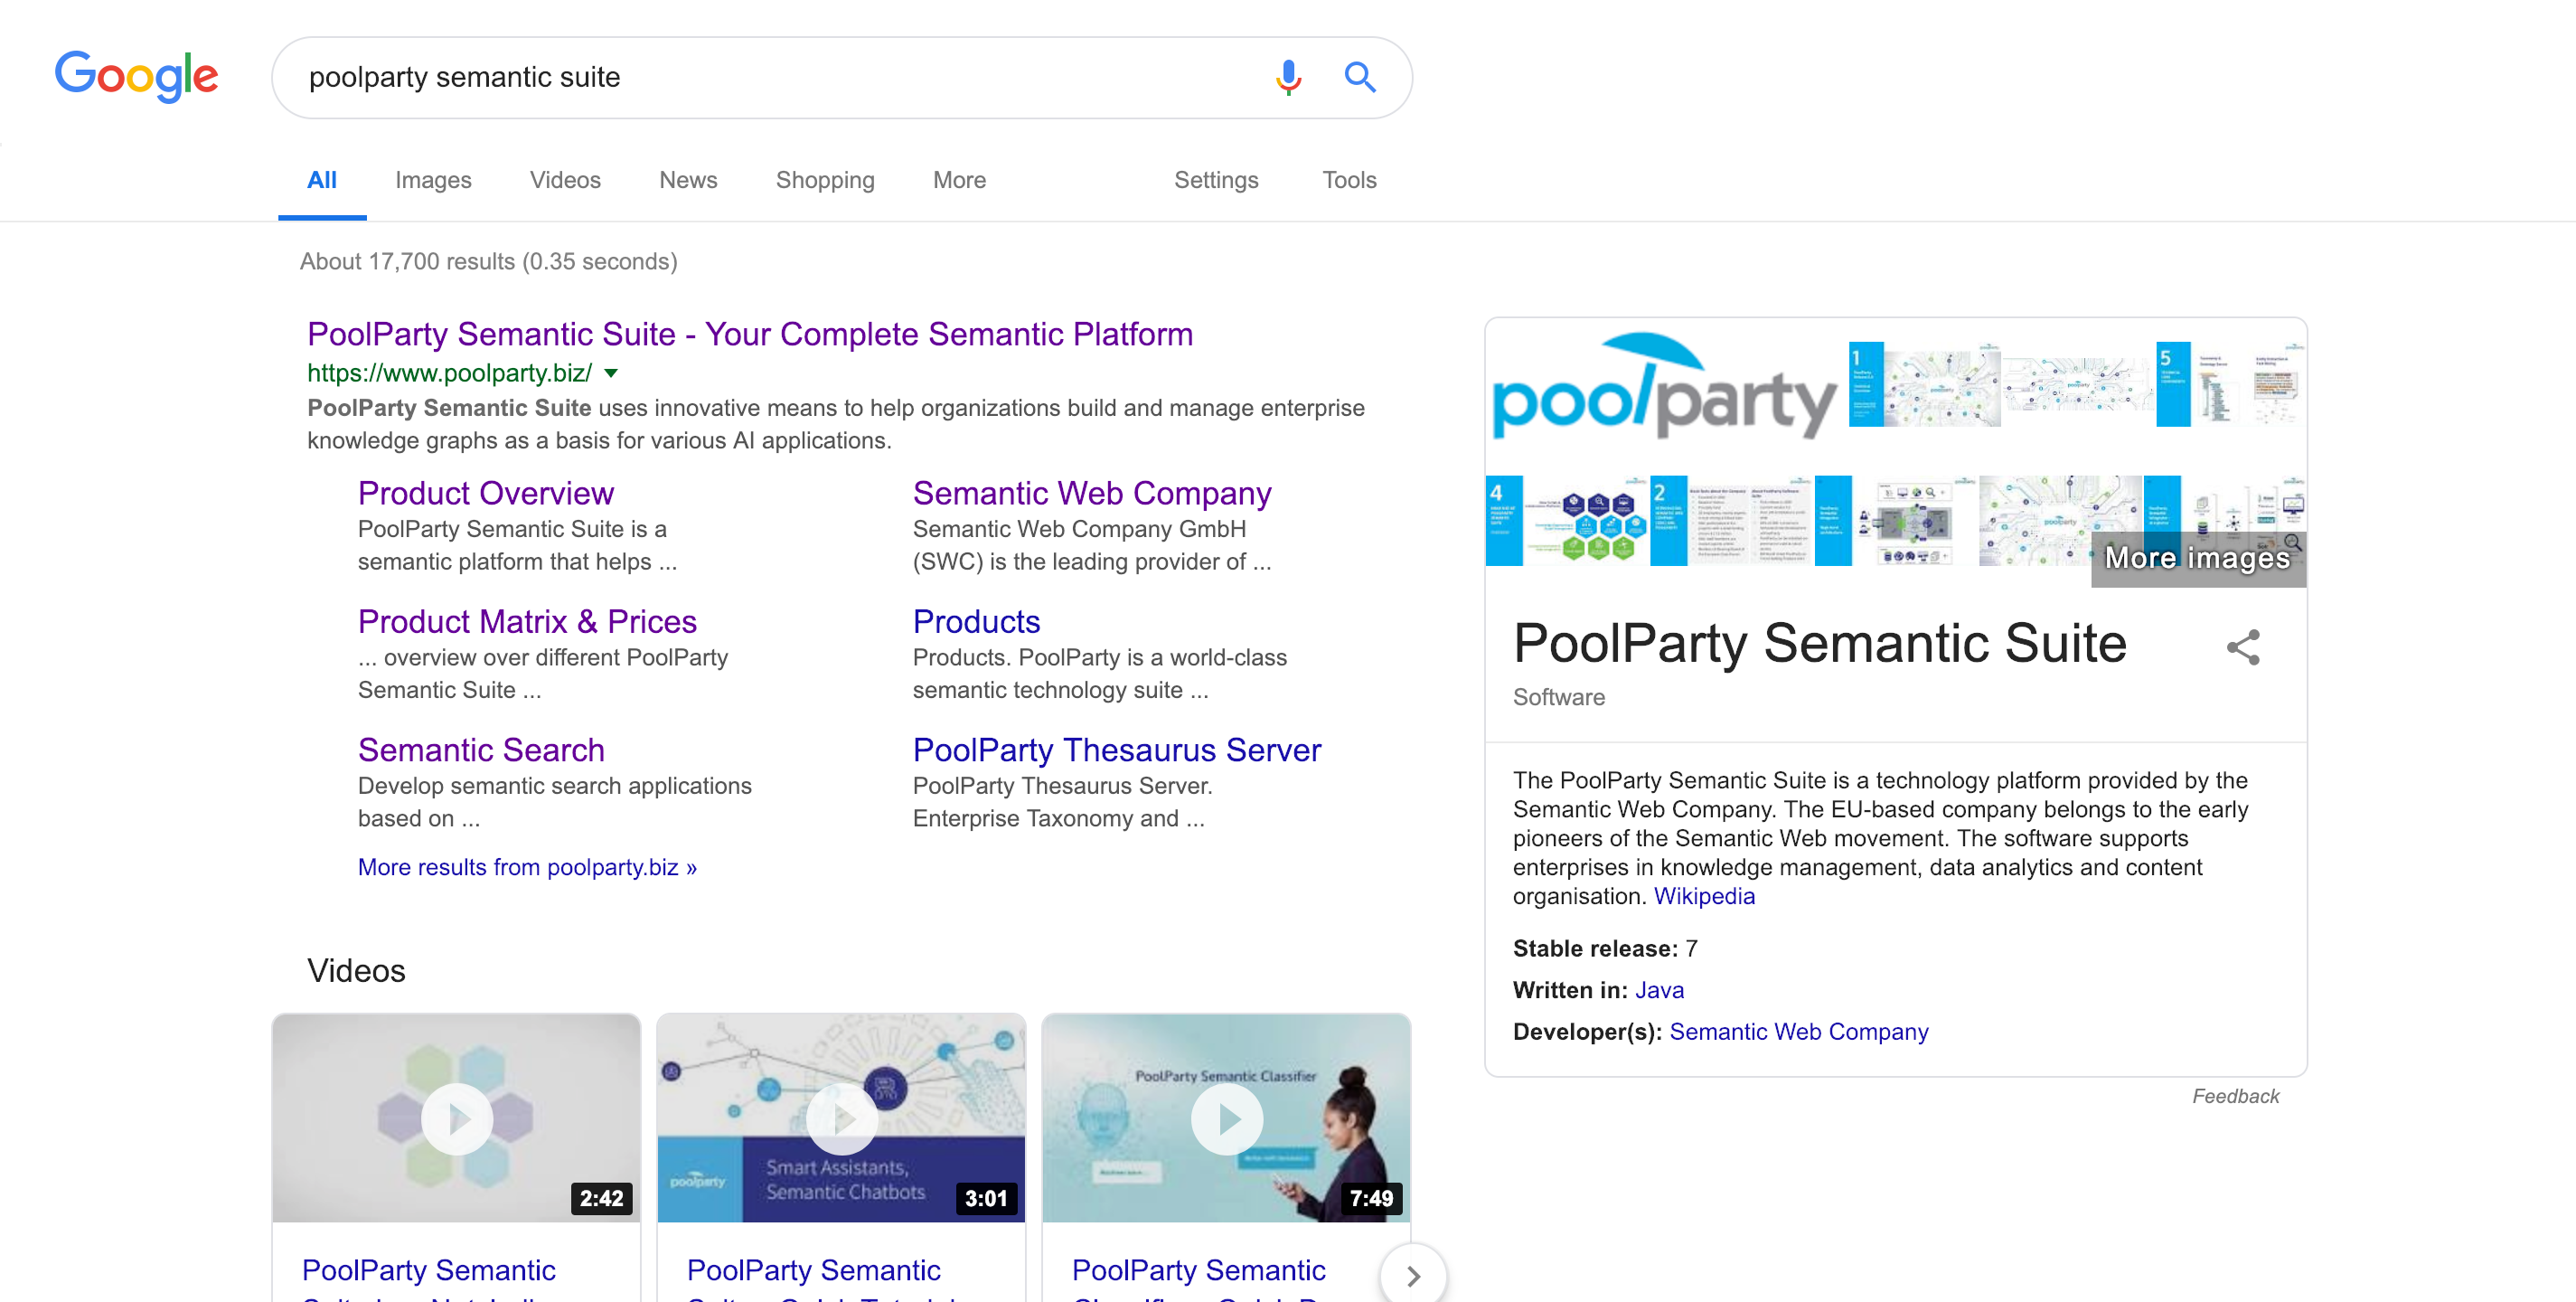 Google Knowledge Graph About PoolParty Semantic Suite